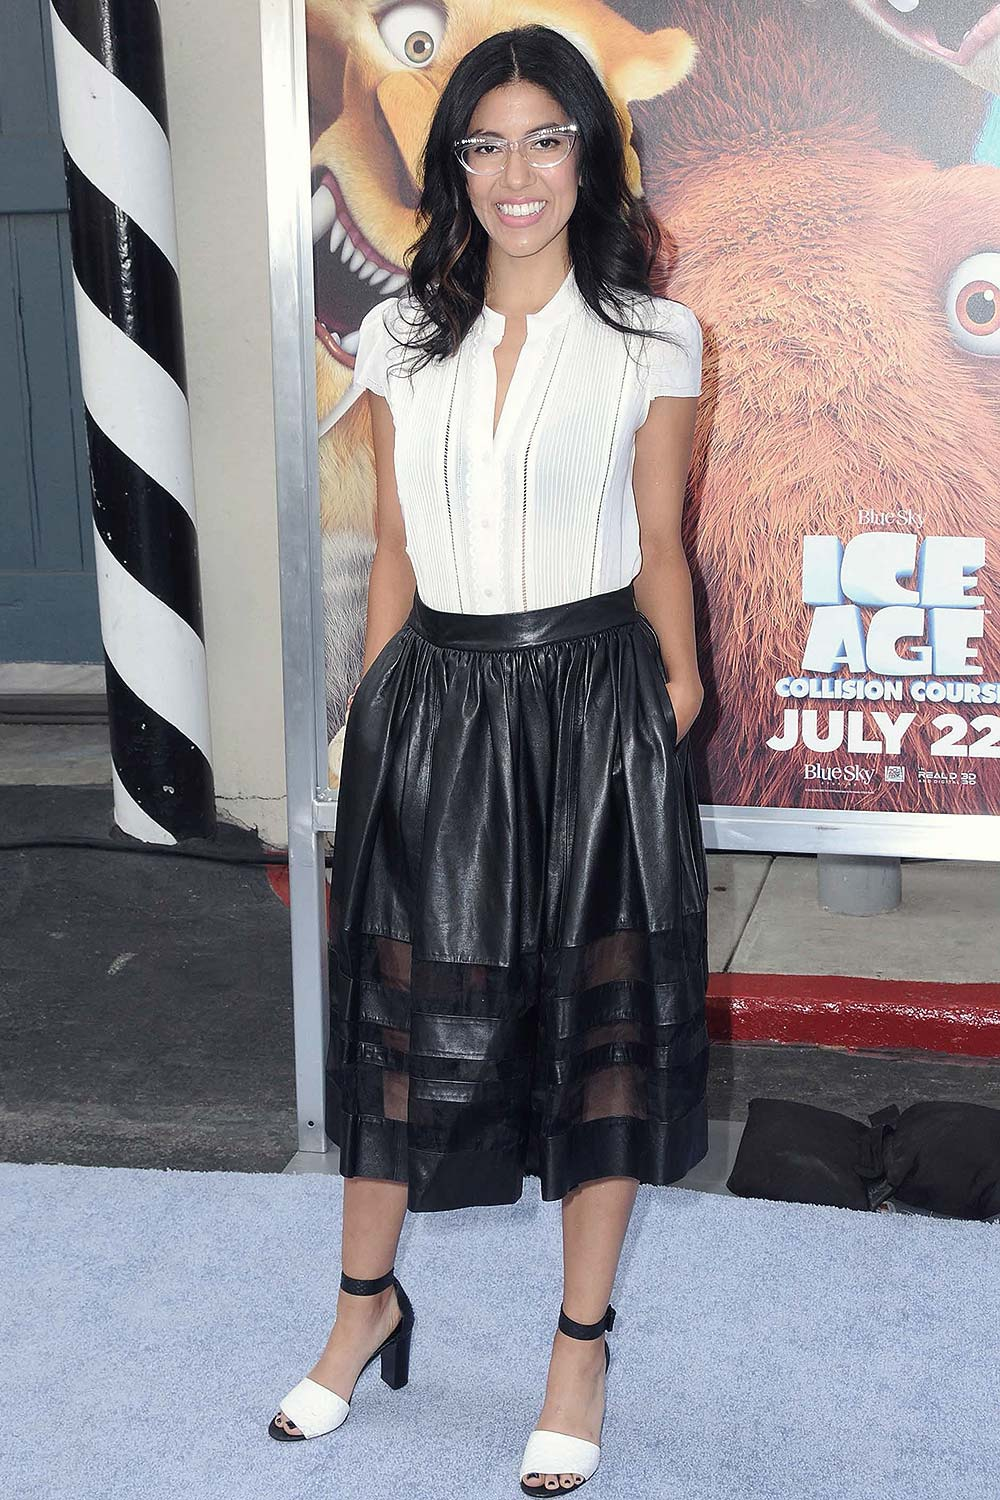 Stephanie Beatriz Attends Ice Age Collision Course